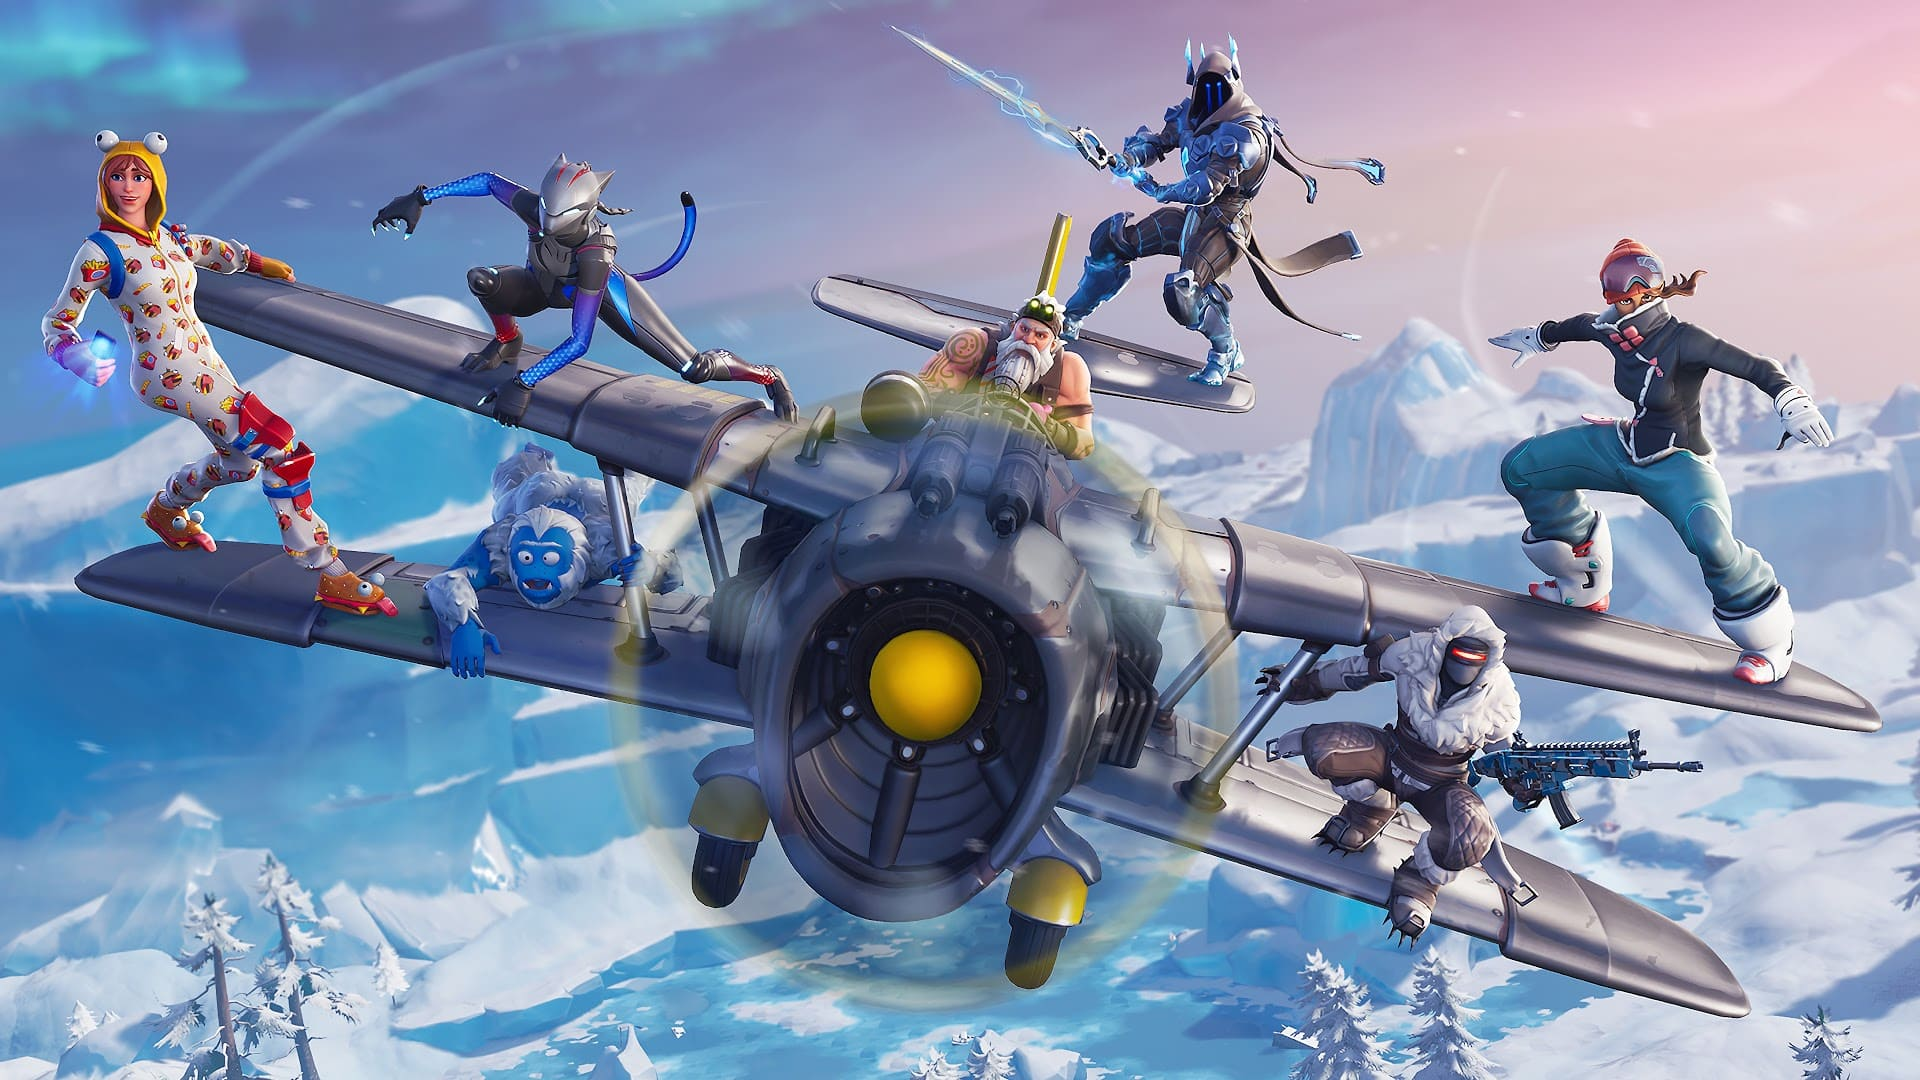 Fortnite Desktop Background Top Best Fortnite Desktop Background Download